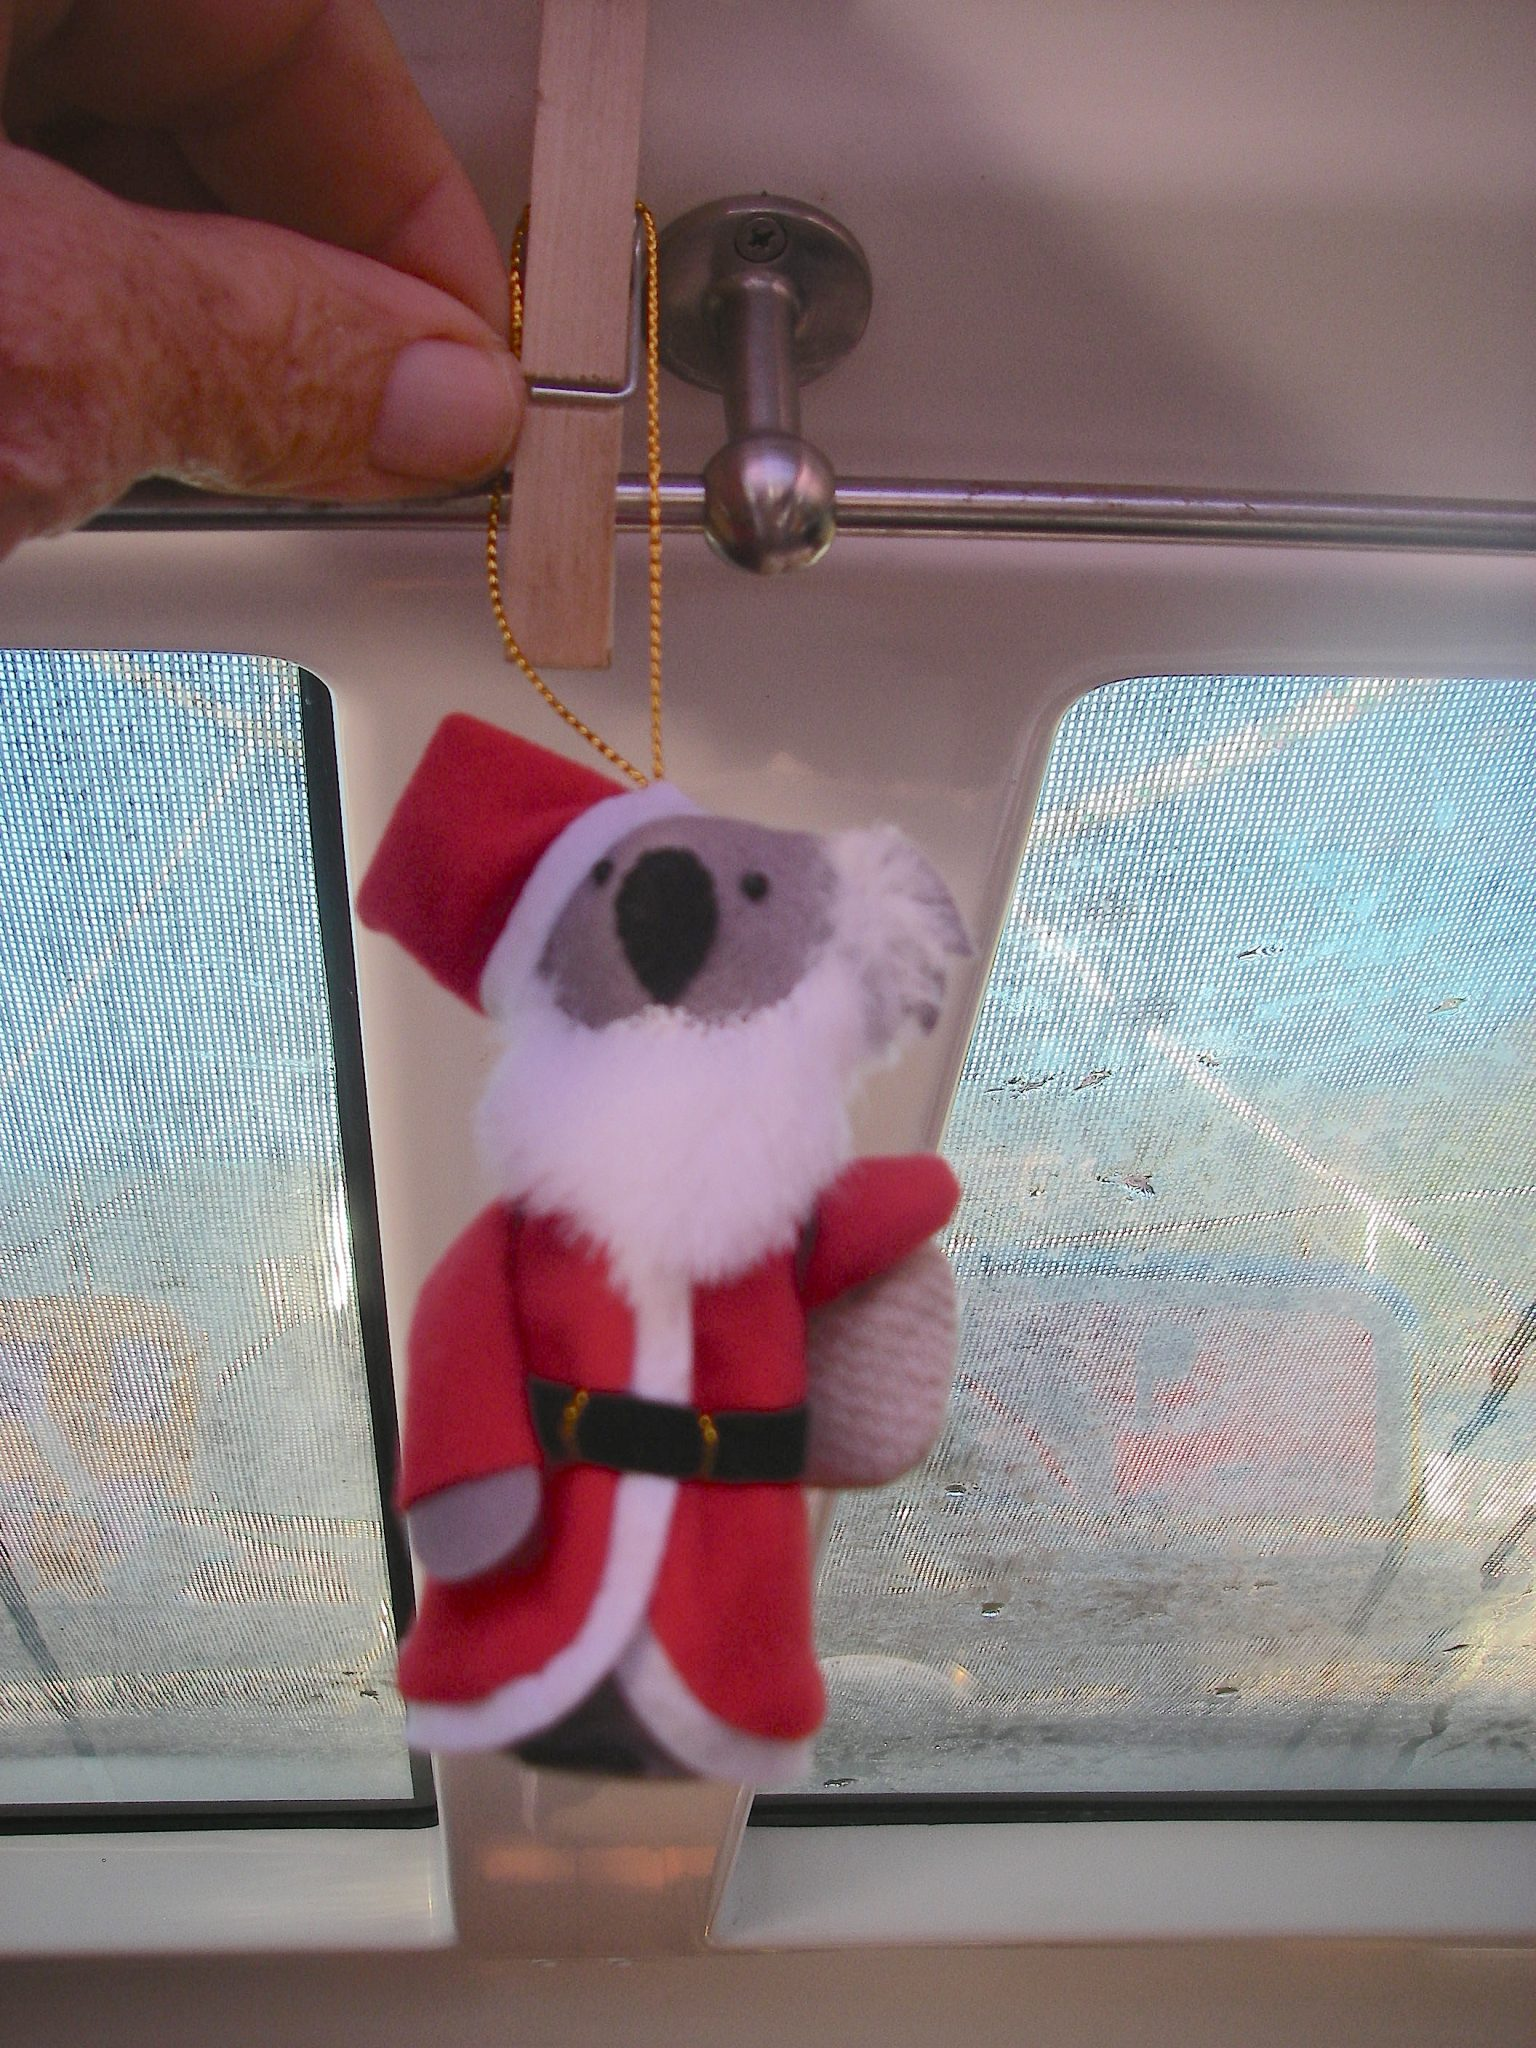 51. Now Joyful has a koala St. Nick from Sydney!